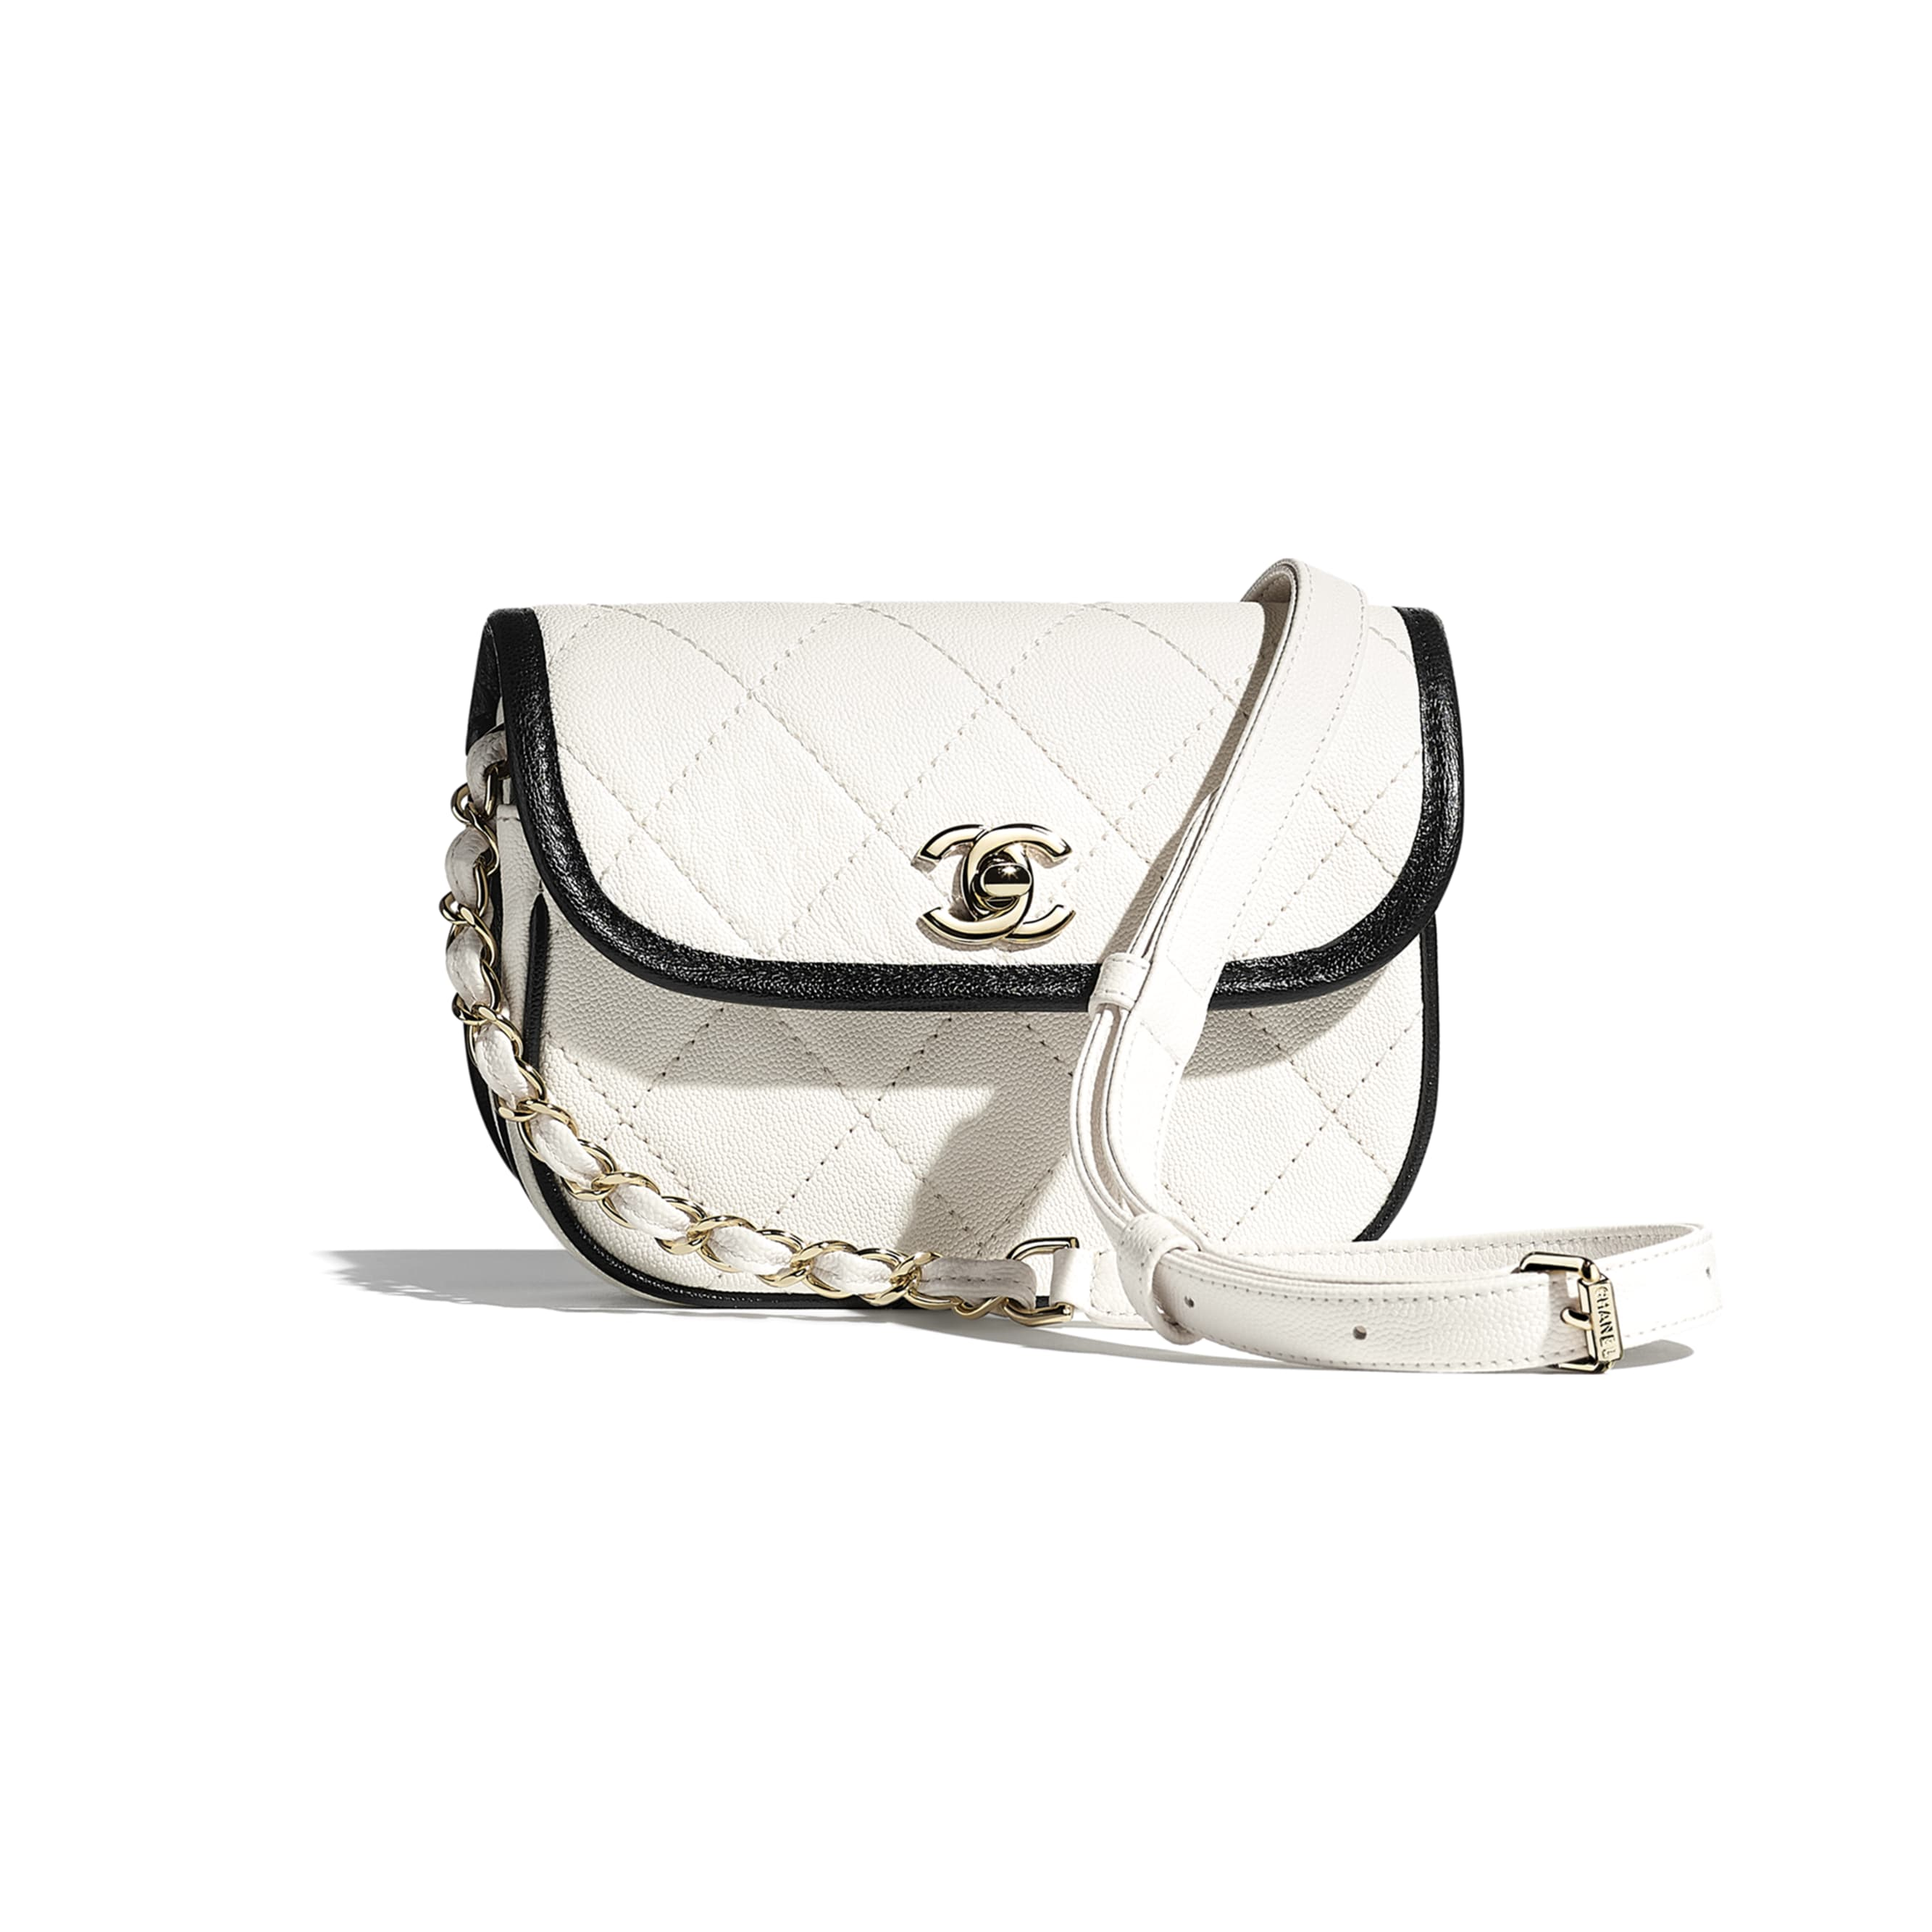 Mini Messenger Bag - White & Black - Grained Calfskin & Gold-Tone Metal - CHANEL - Default view - see standard sized version